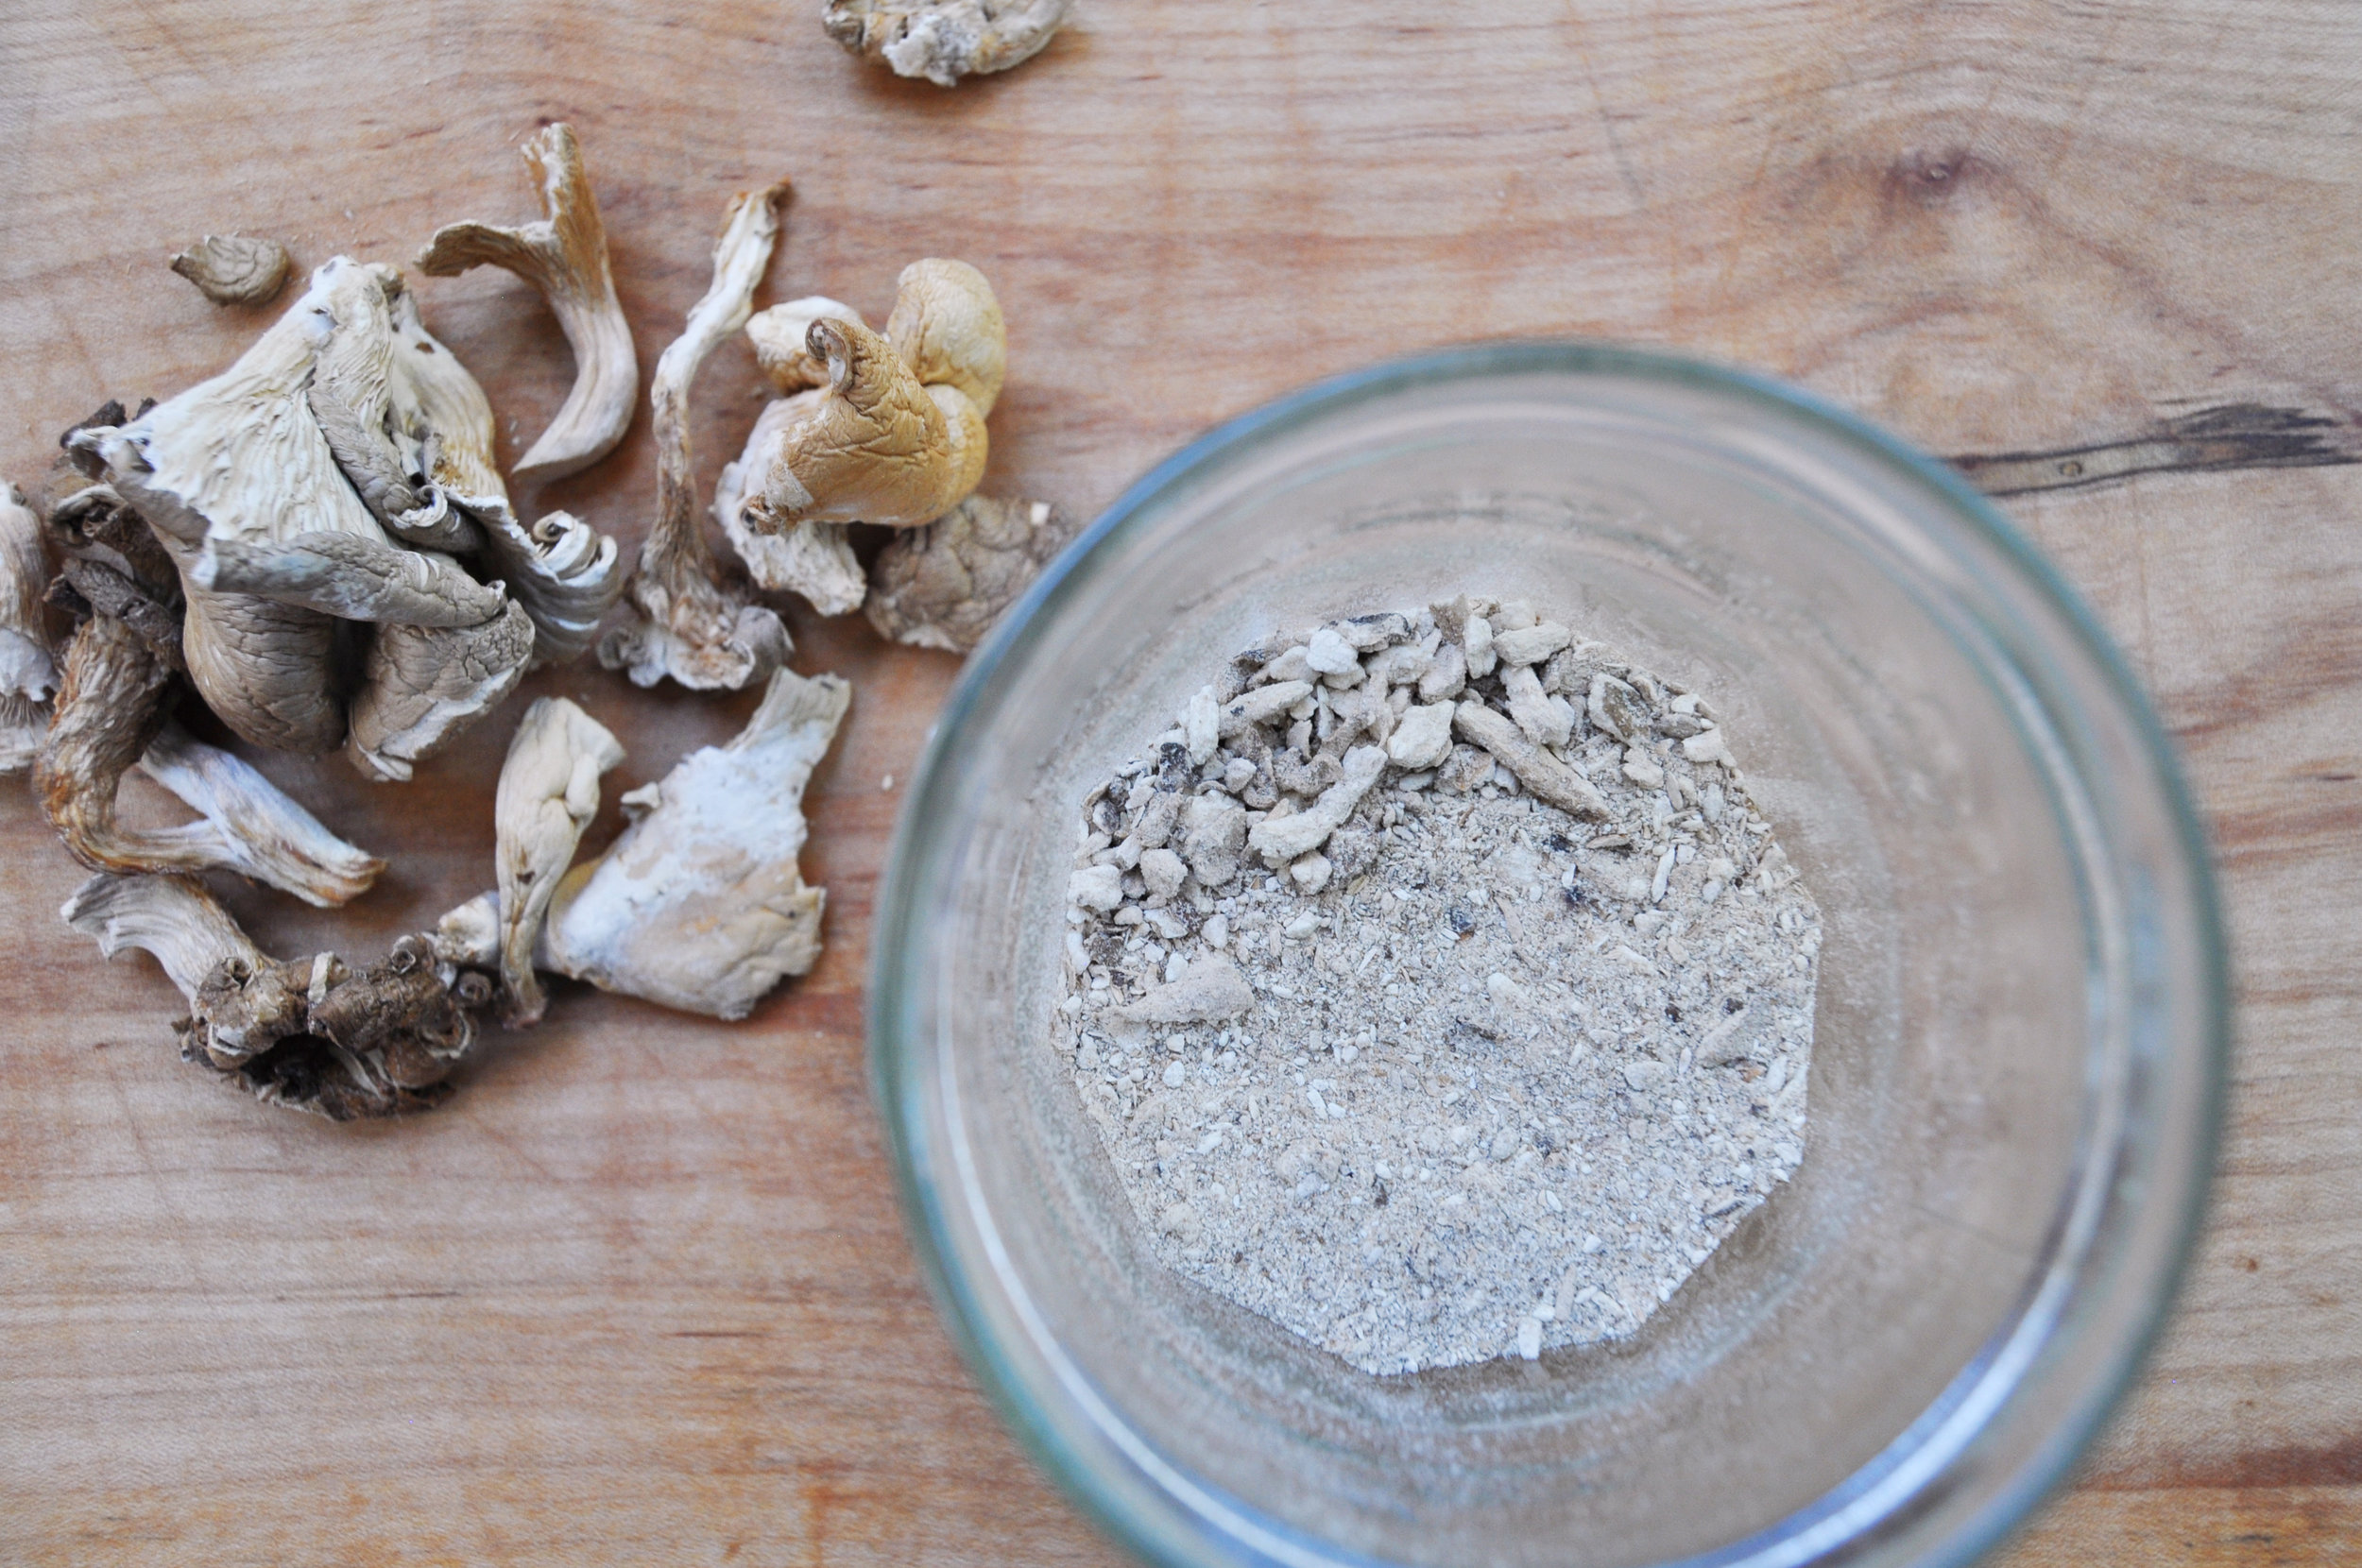 Dried mushrooms and dried mushroom powder. Do not snort.